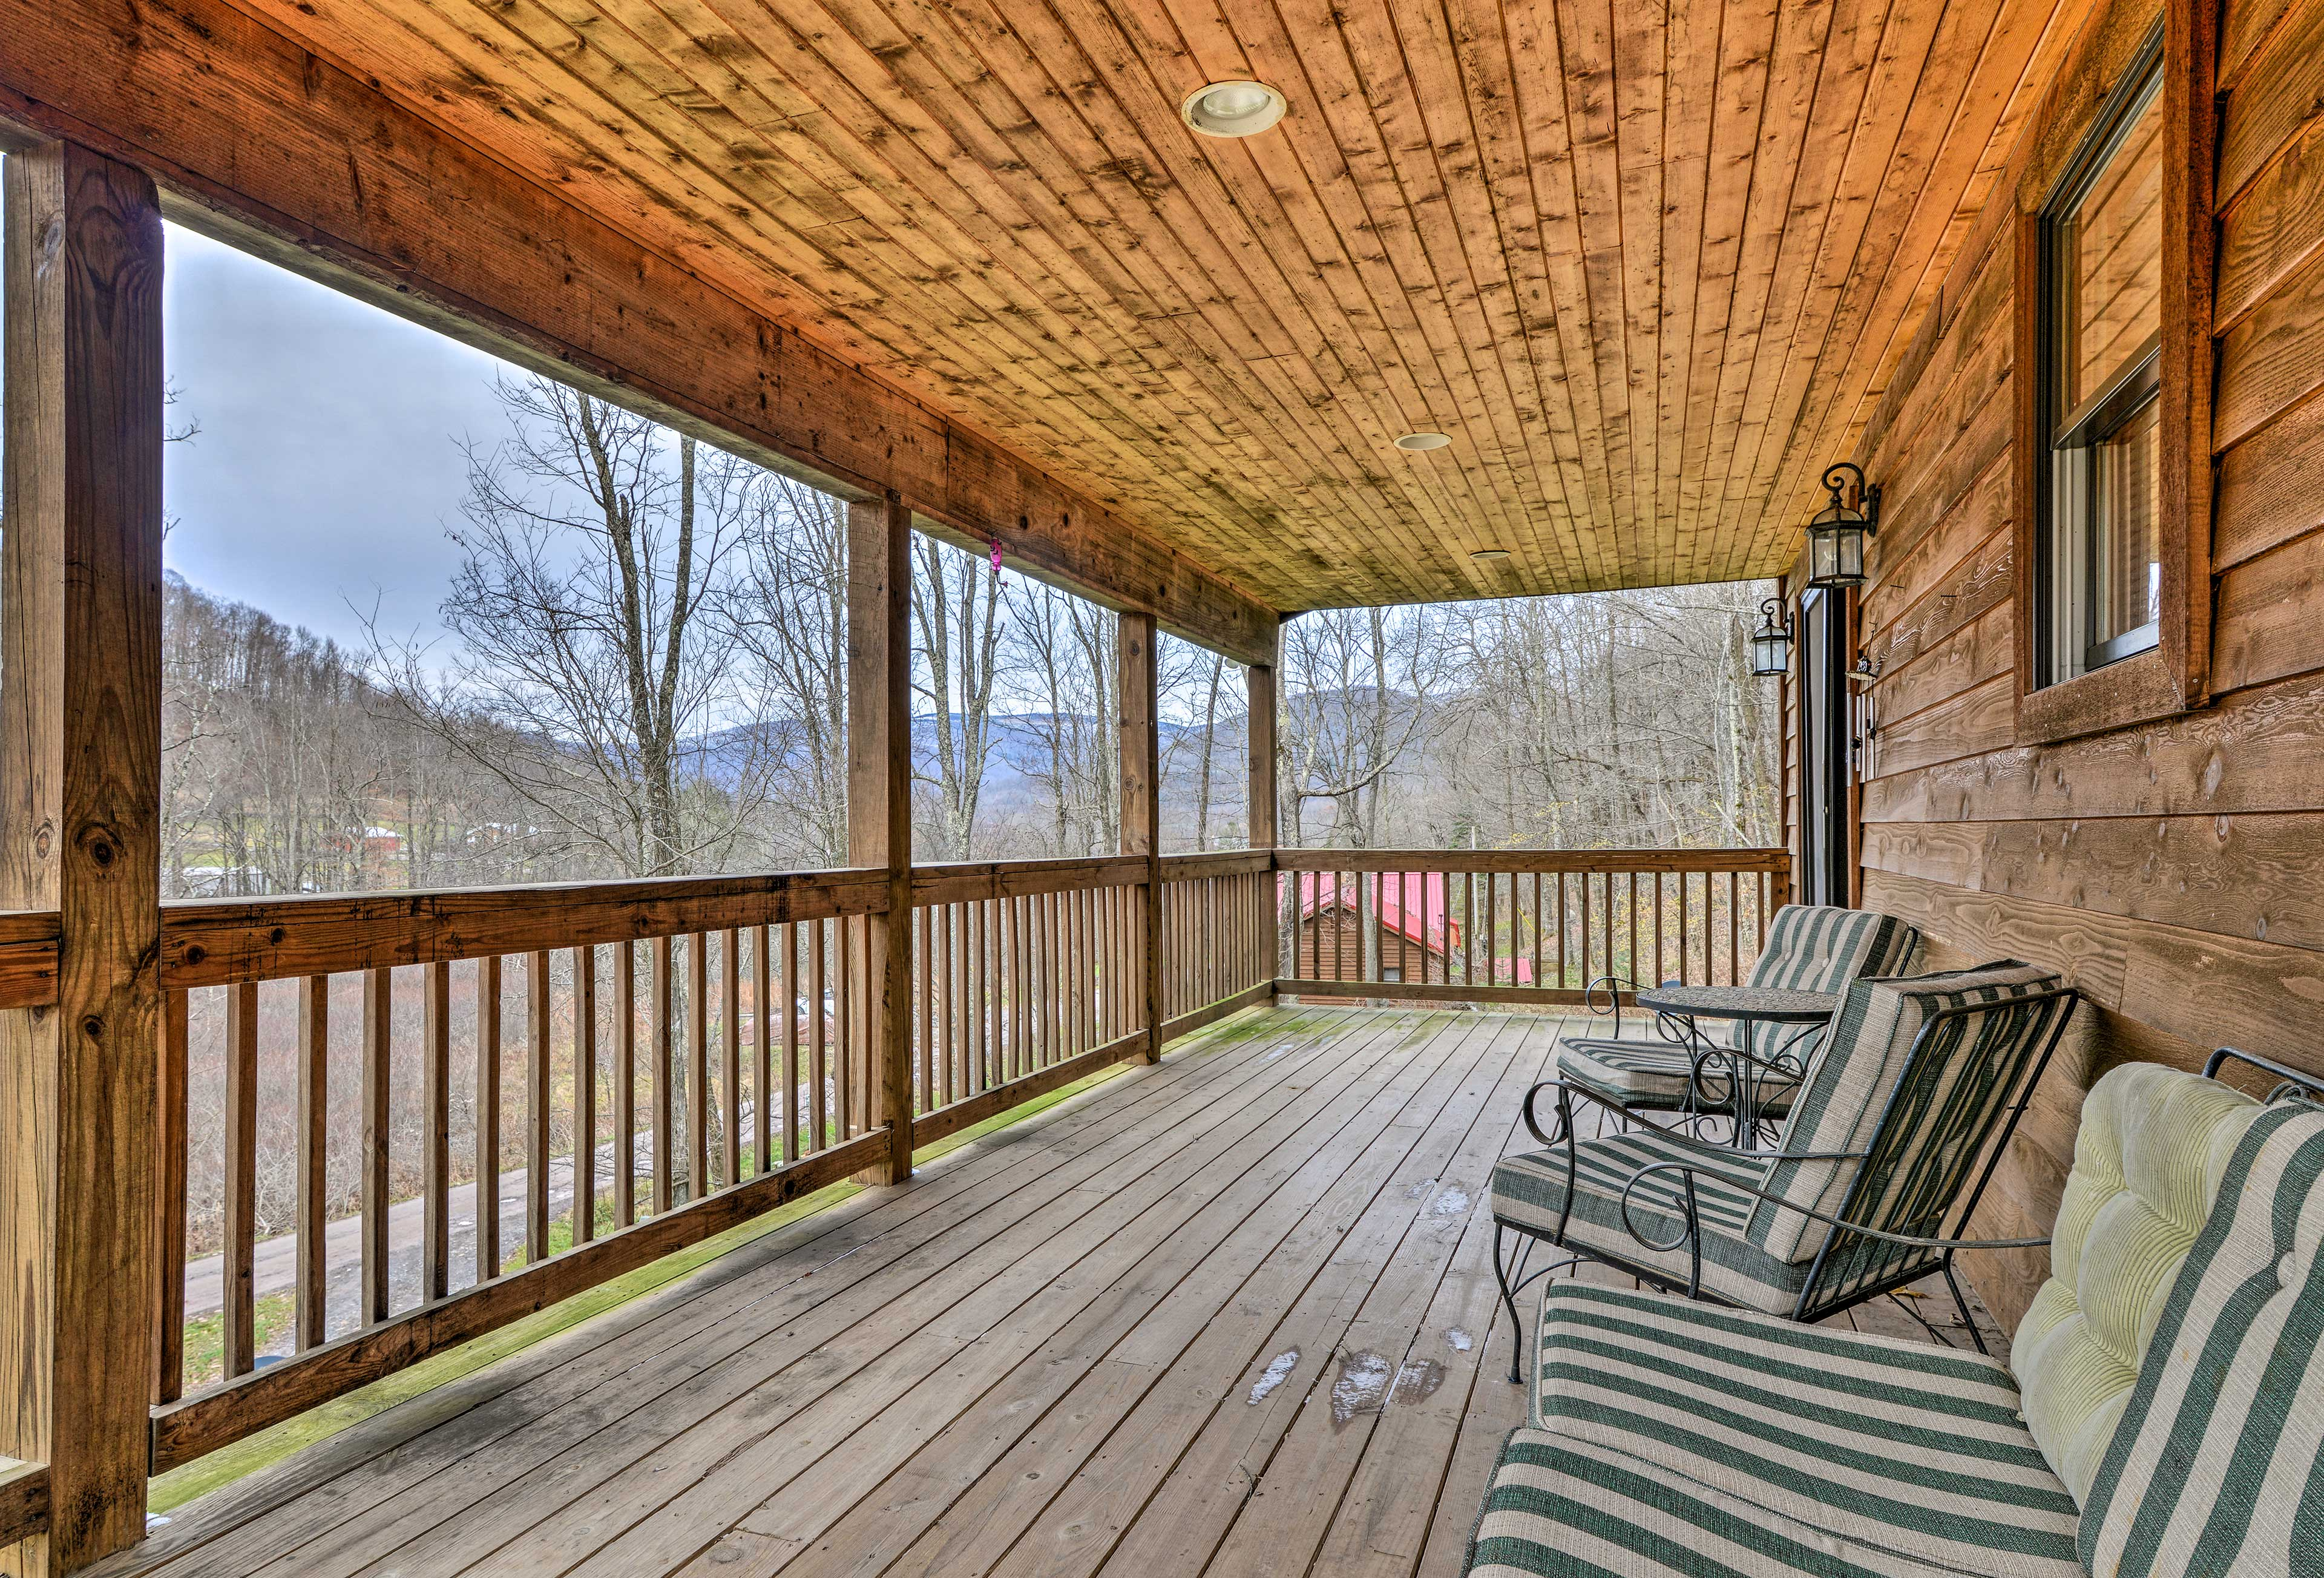 Six guests will enjoy this secluded cabin with plenty of excitement in the area!